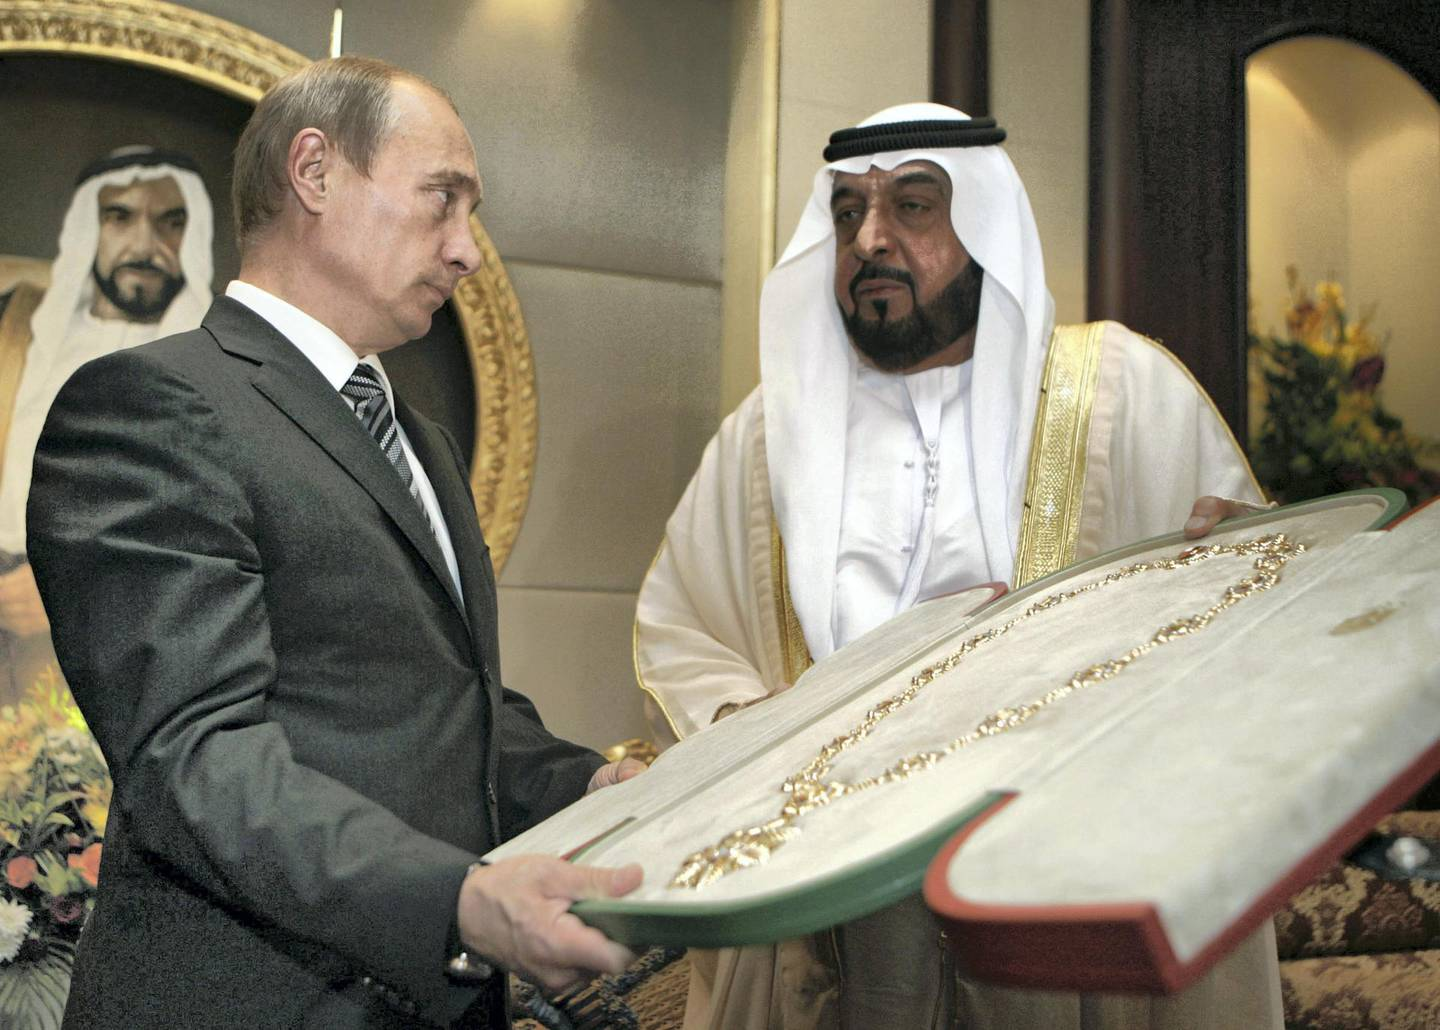 Sheikh Khalifa bin Zayed Al Nahayan (R) presents the country's highest award, the Zayed Order, to Russian President Vladimir Putin (L) at the Mushrif Palace in Abu Dhabi. Putin is accompanied on the trip by the director of arms exporter Rosoboronexport, as well as those of the airline Aeroflot and space agency Roskosmos.        RIA NOVOSTI / KREMLIN POOL / DMITRY ASTAKHOV / AFP PHOTO / POOL / DMITRY ASTAKHOV